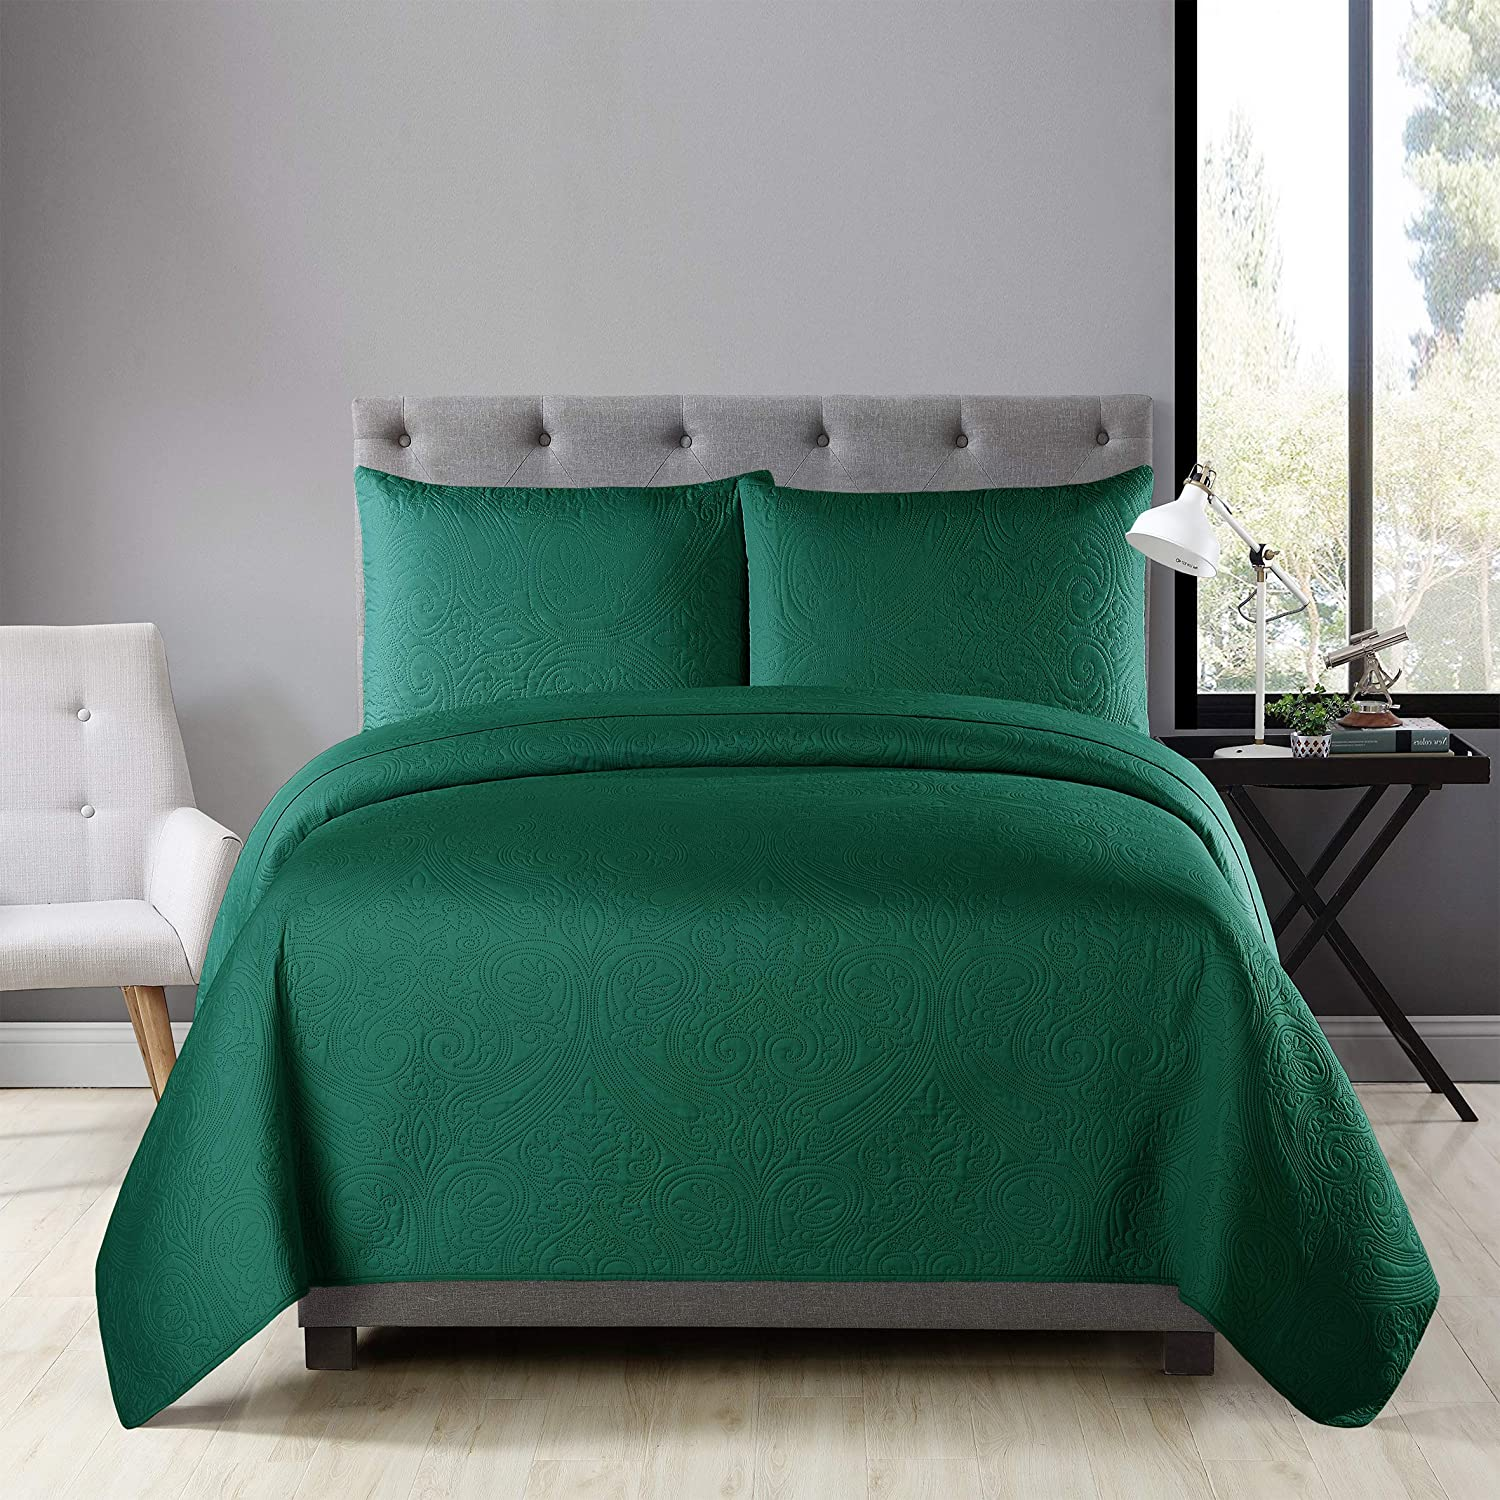 "Golden Linens Ultrasonic #D1 Over Size 108"" X 95"" Full/Queen 3 Pieces Solid Color Embossed, Bedspread Coverlet Set # Ultrasonic D1 Hunter Green, Full/Queen"